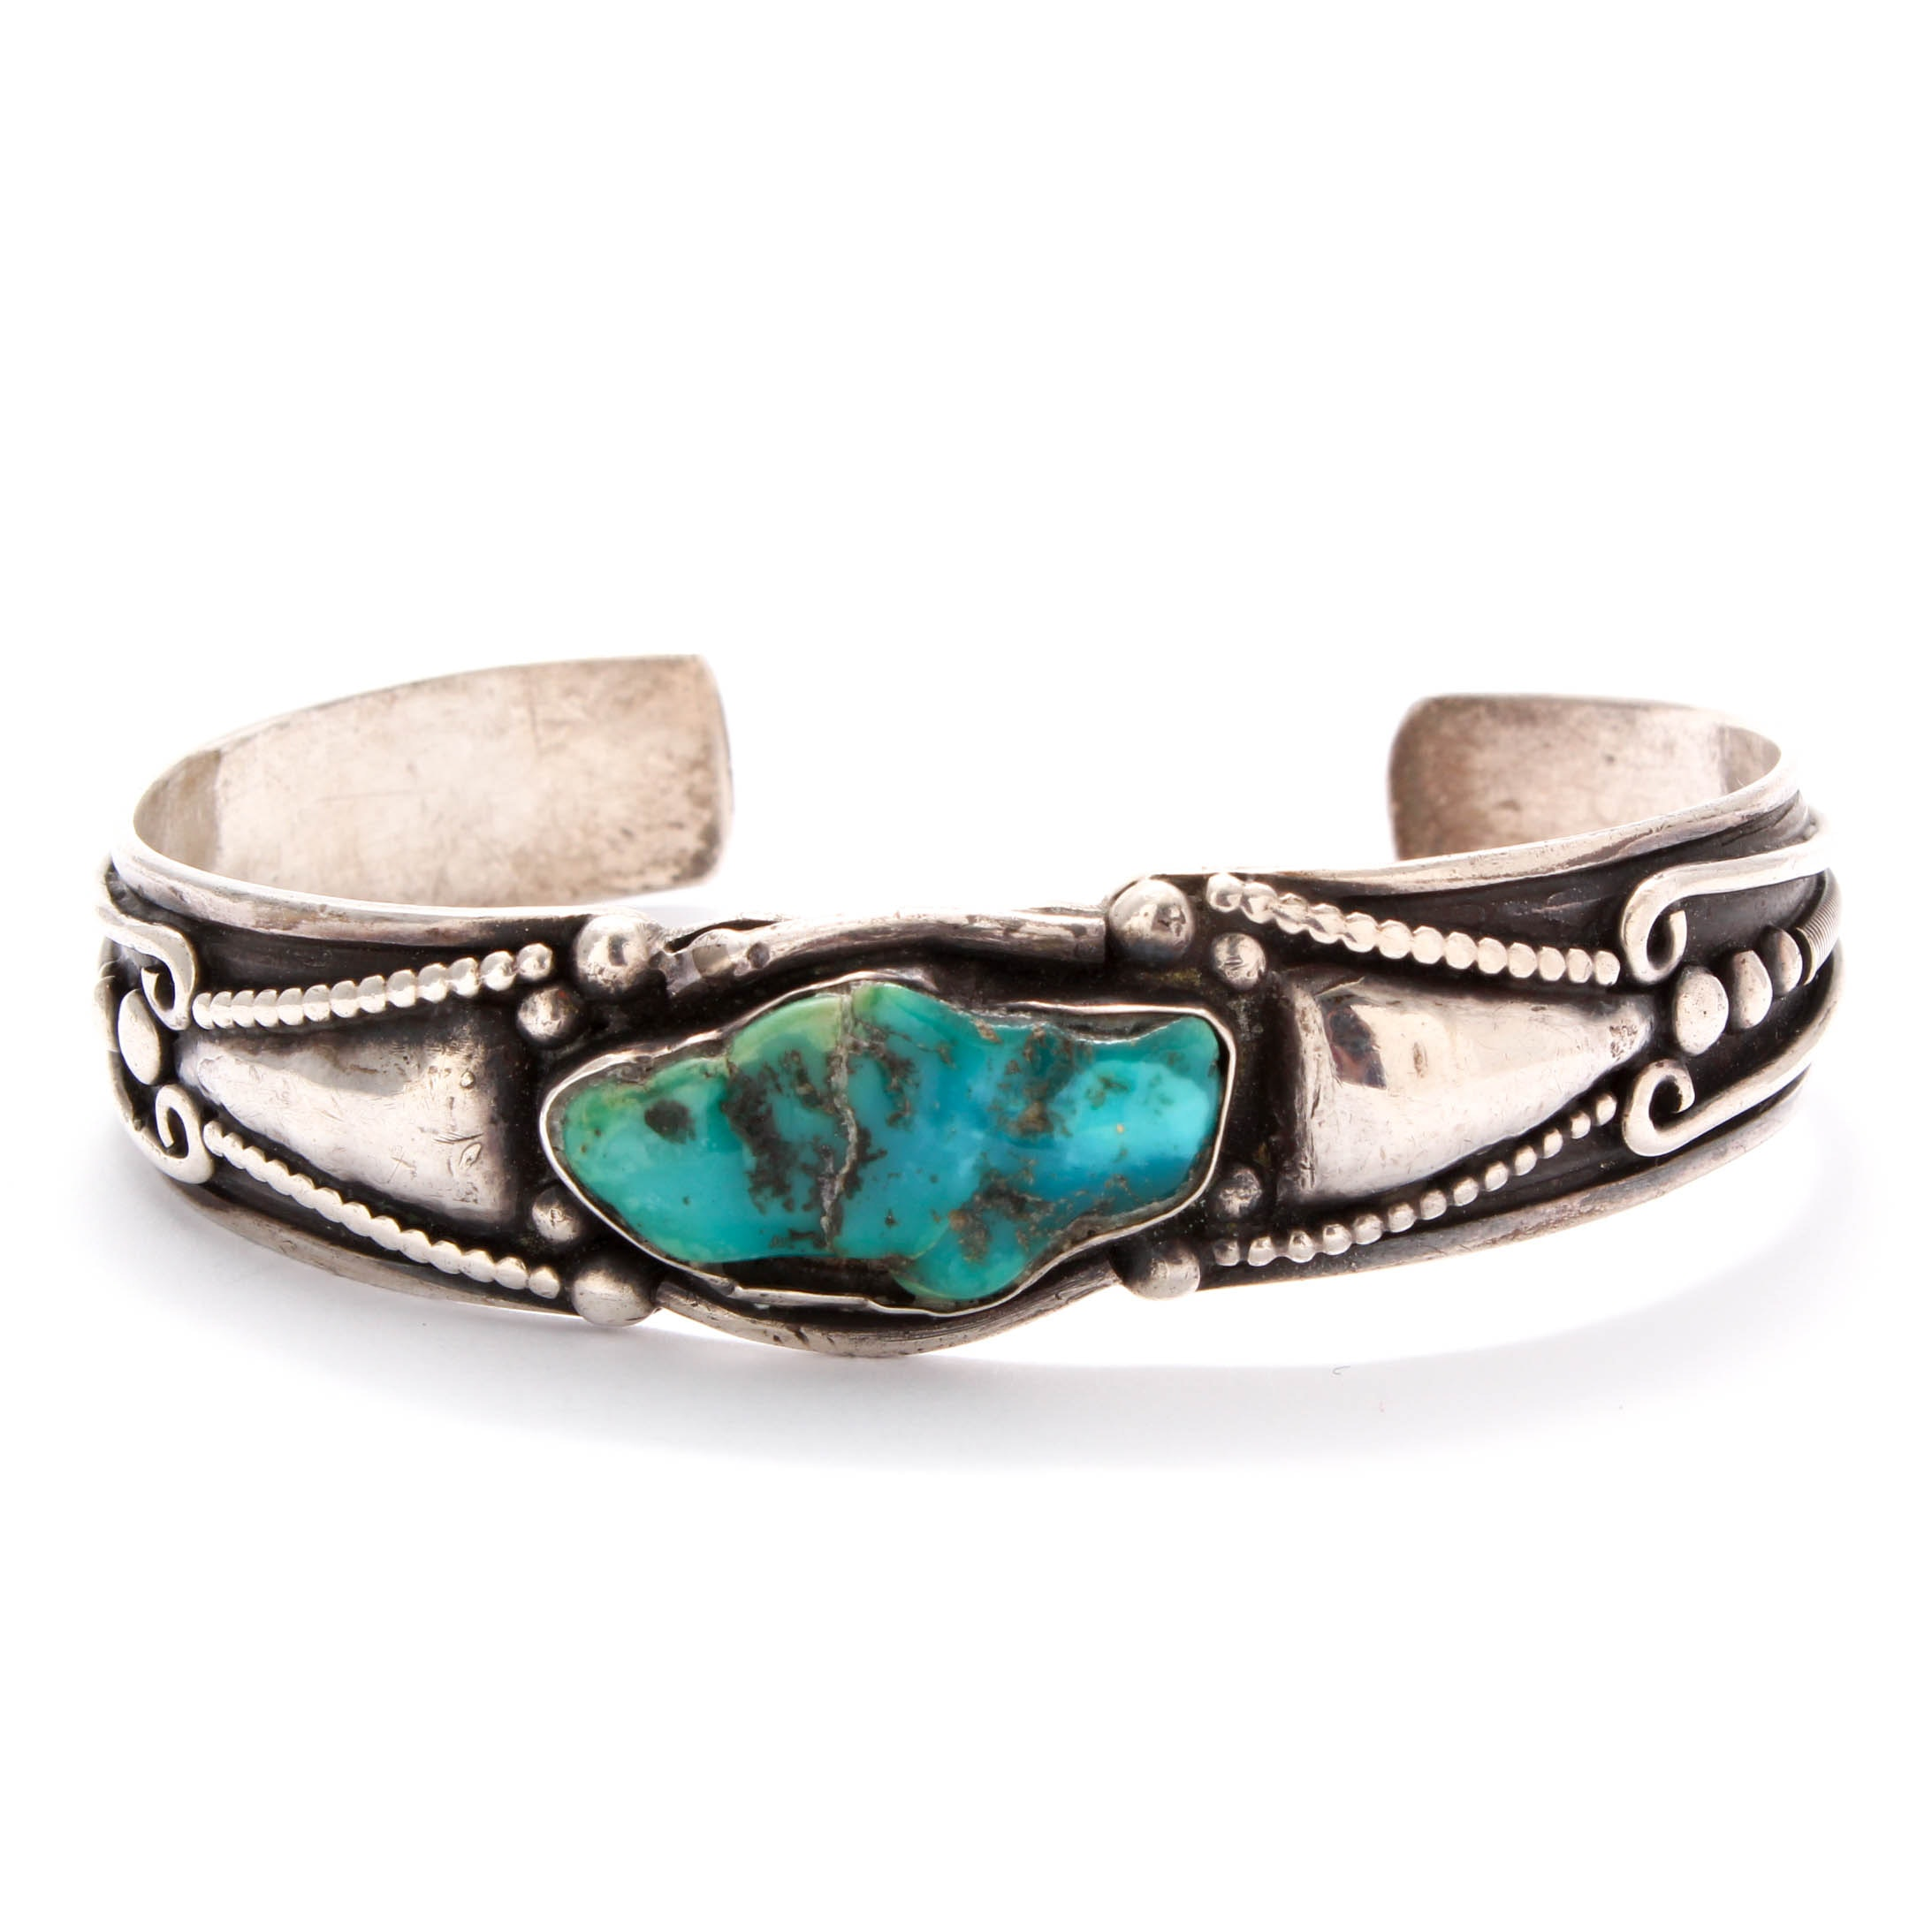 Allen Pooyouma Hopi Sterling Silver Dyed Turquoise Cuff